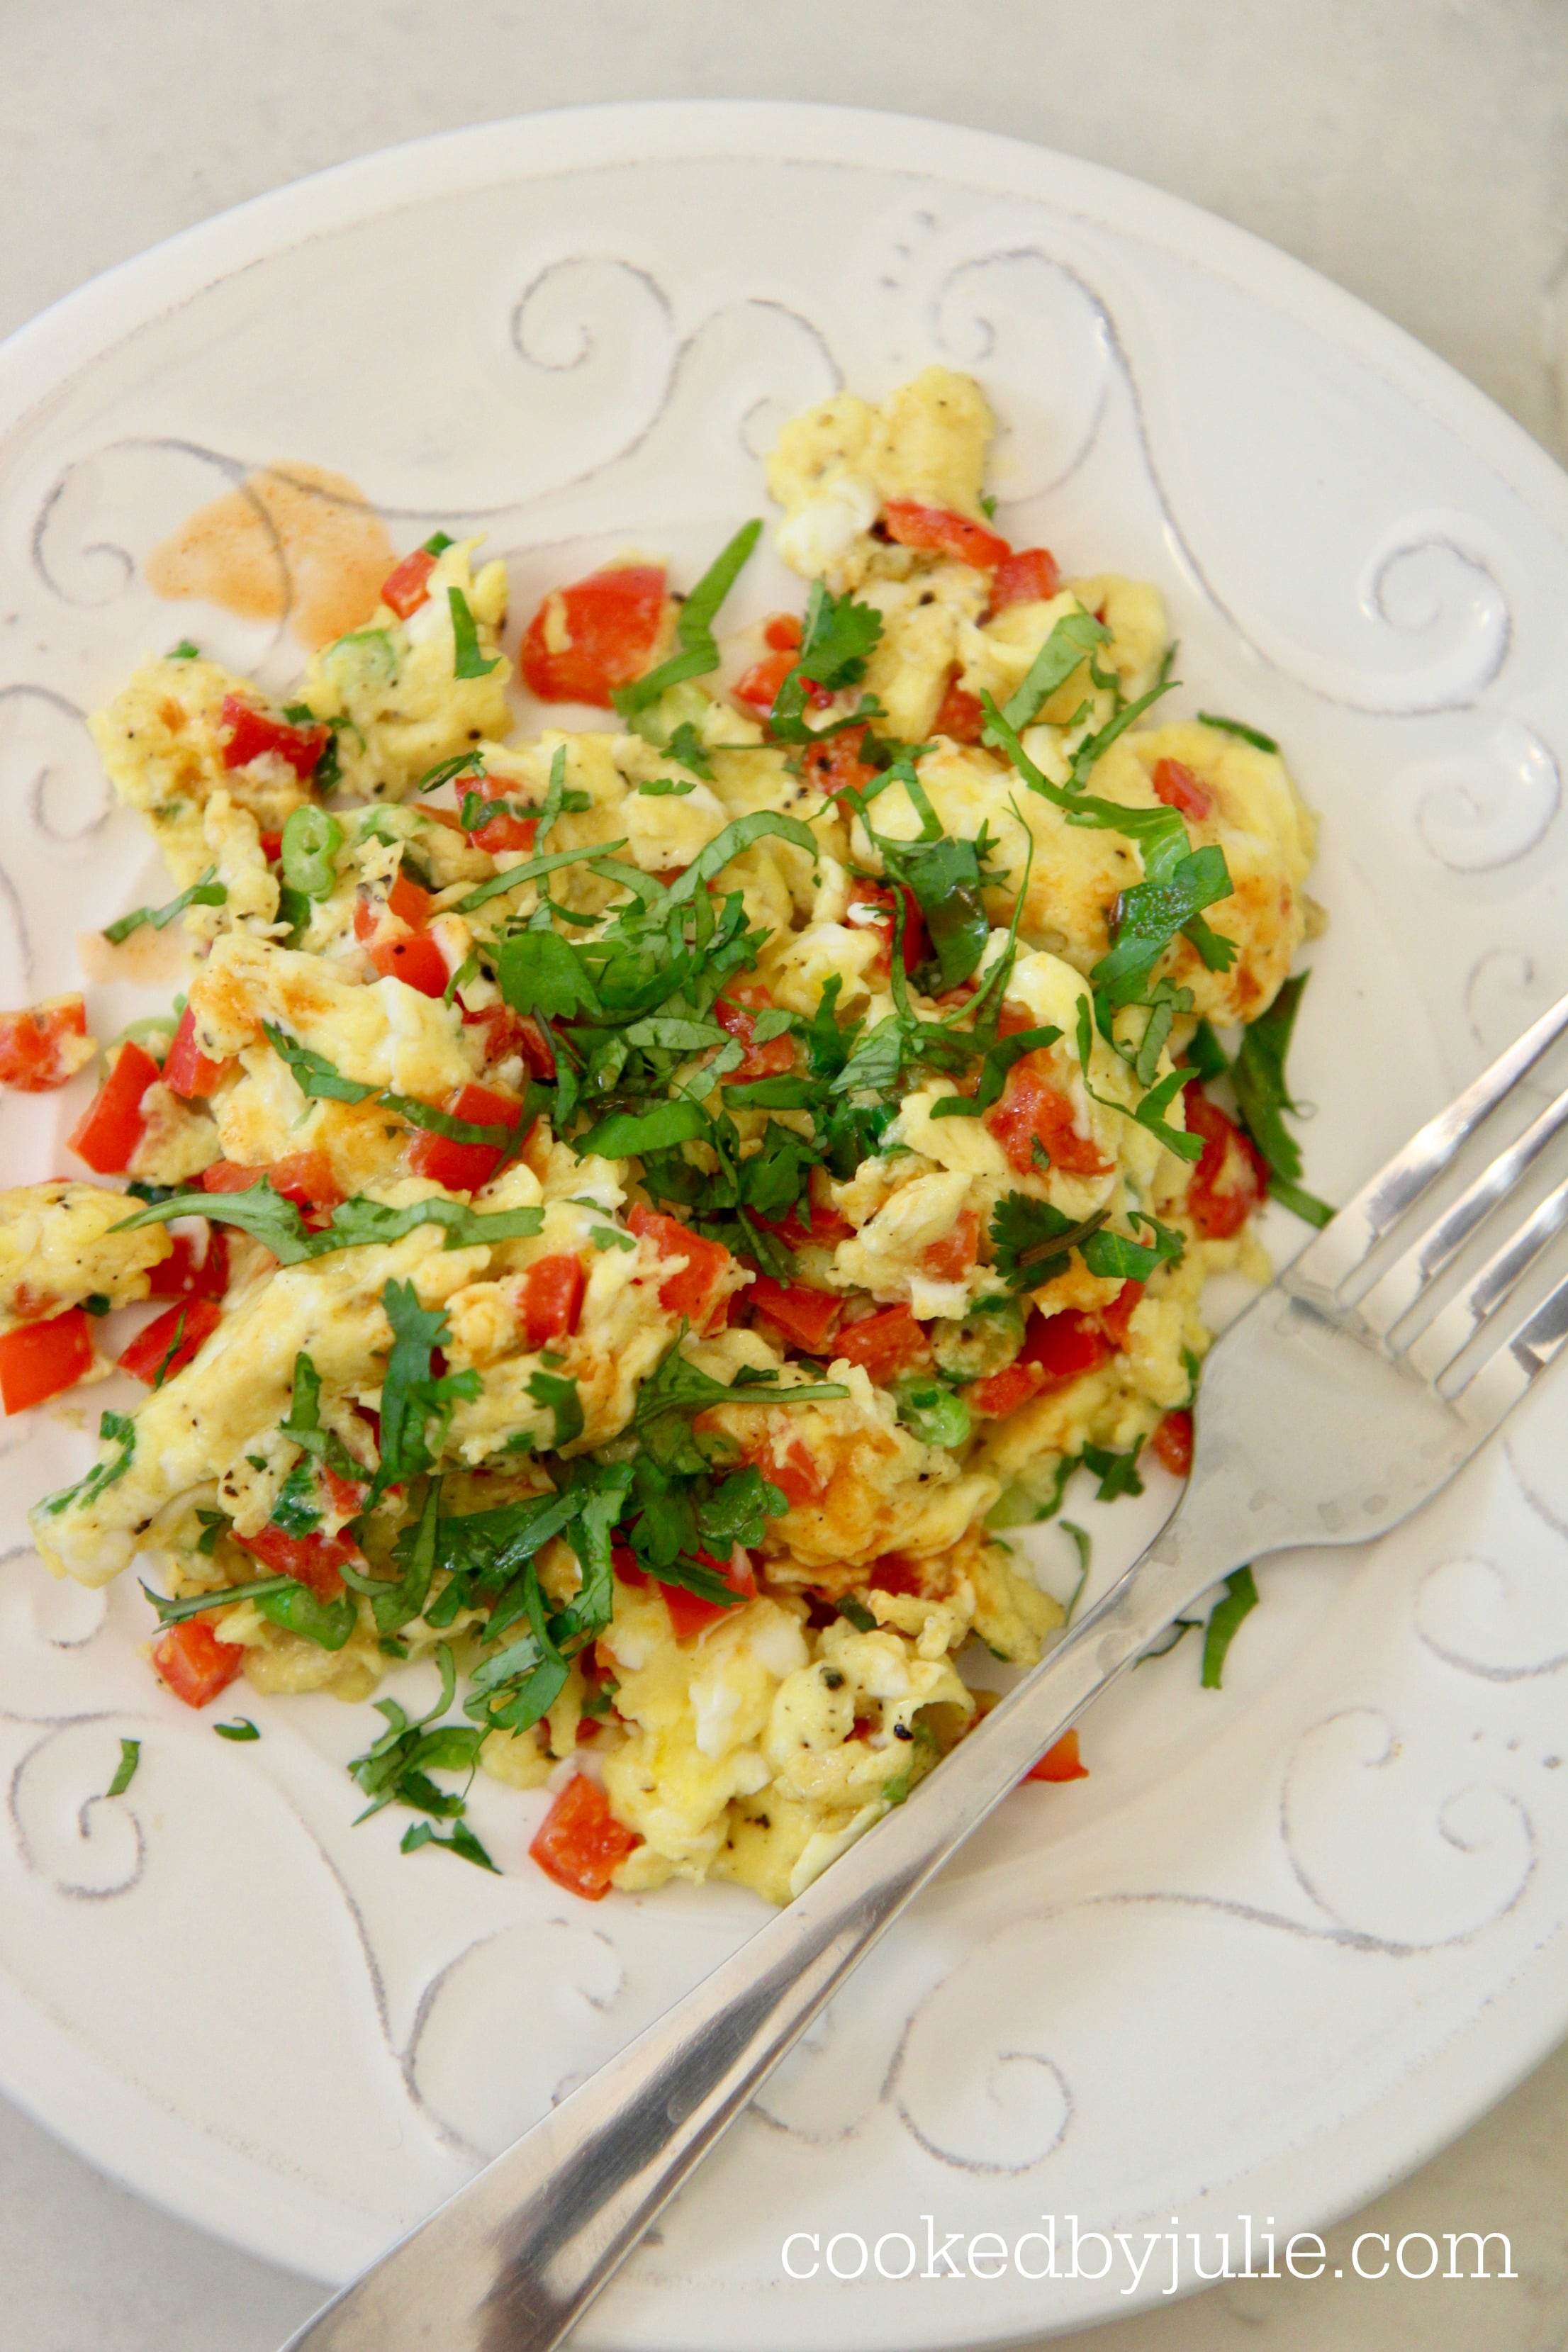 scrambled eggs with onions, peppers, cilantro, and hot sauce.